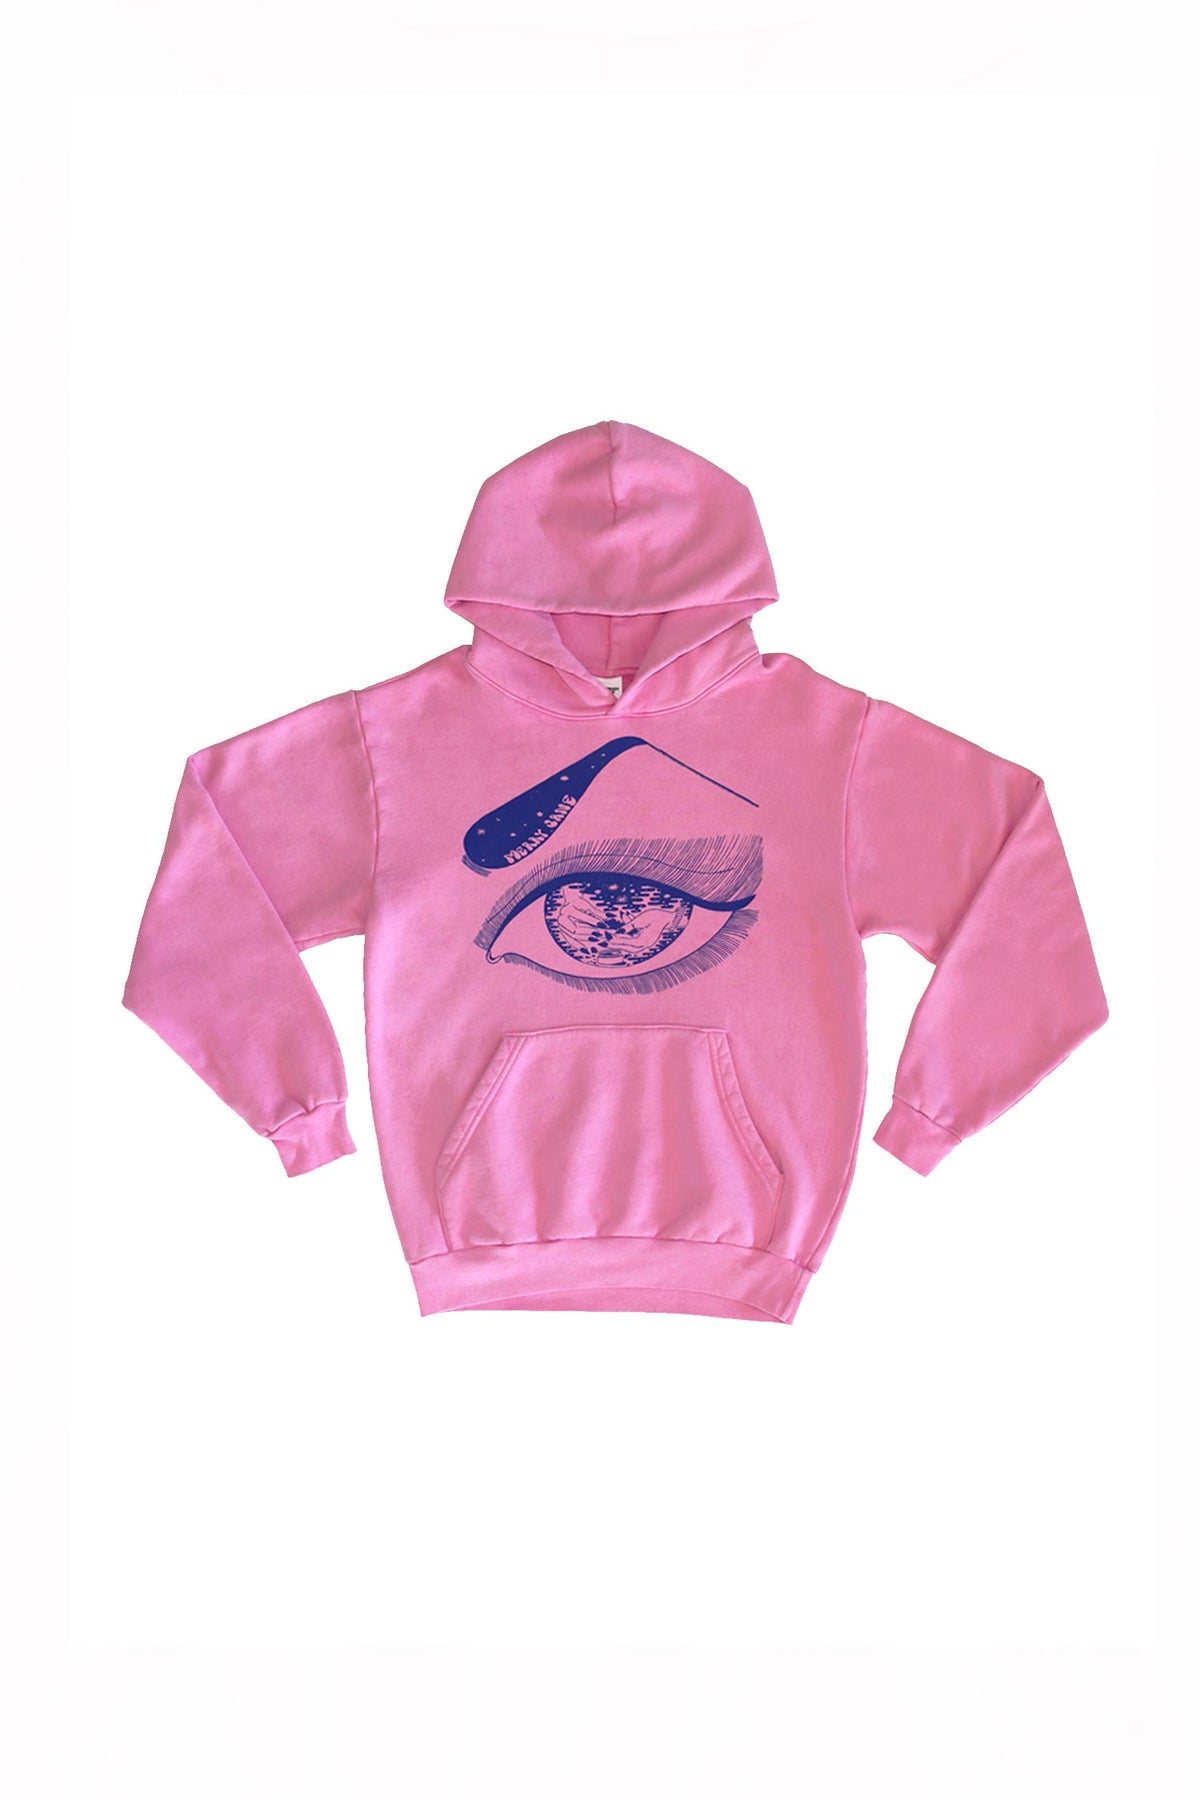 Merry Jane x Heather Benjamin Hoodie